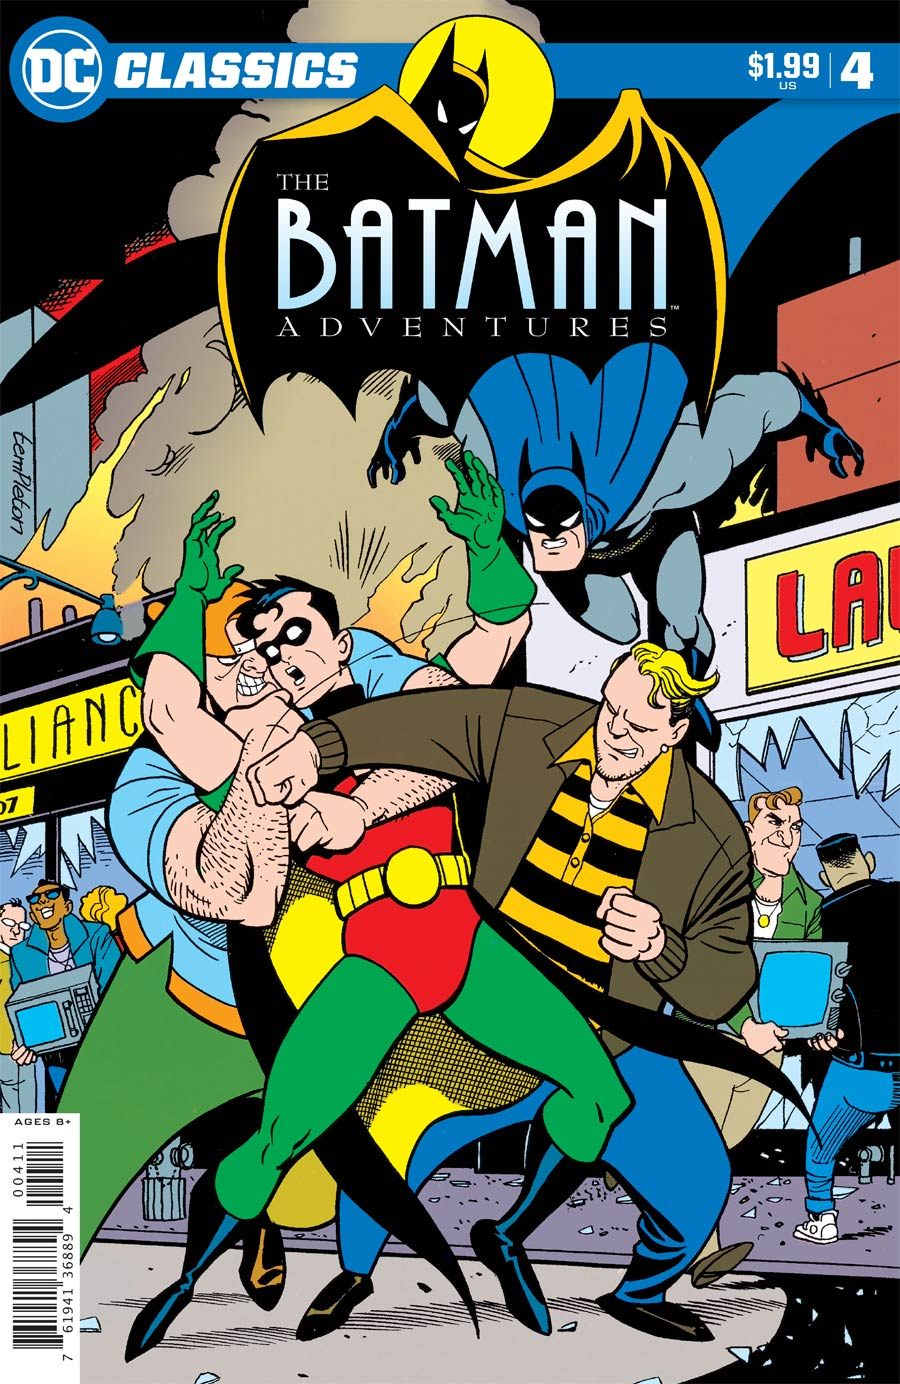 DC Classics: Batman Adventures #4 (2020)